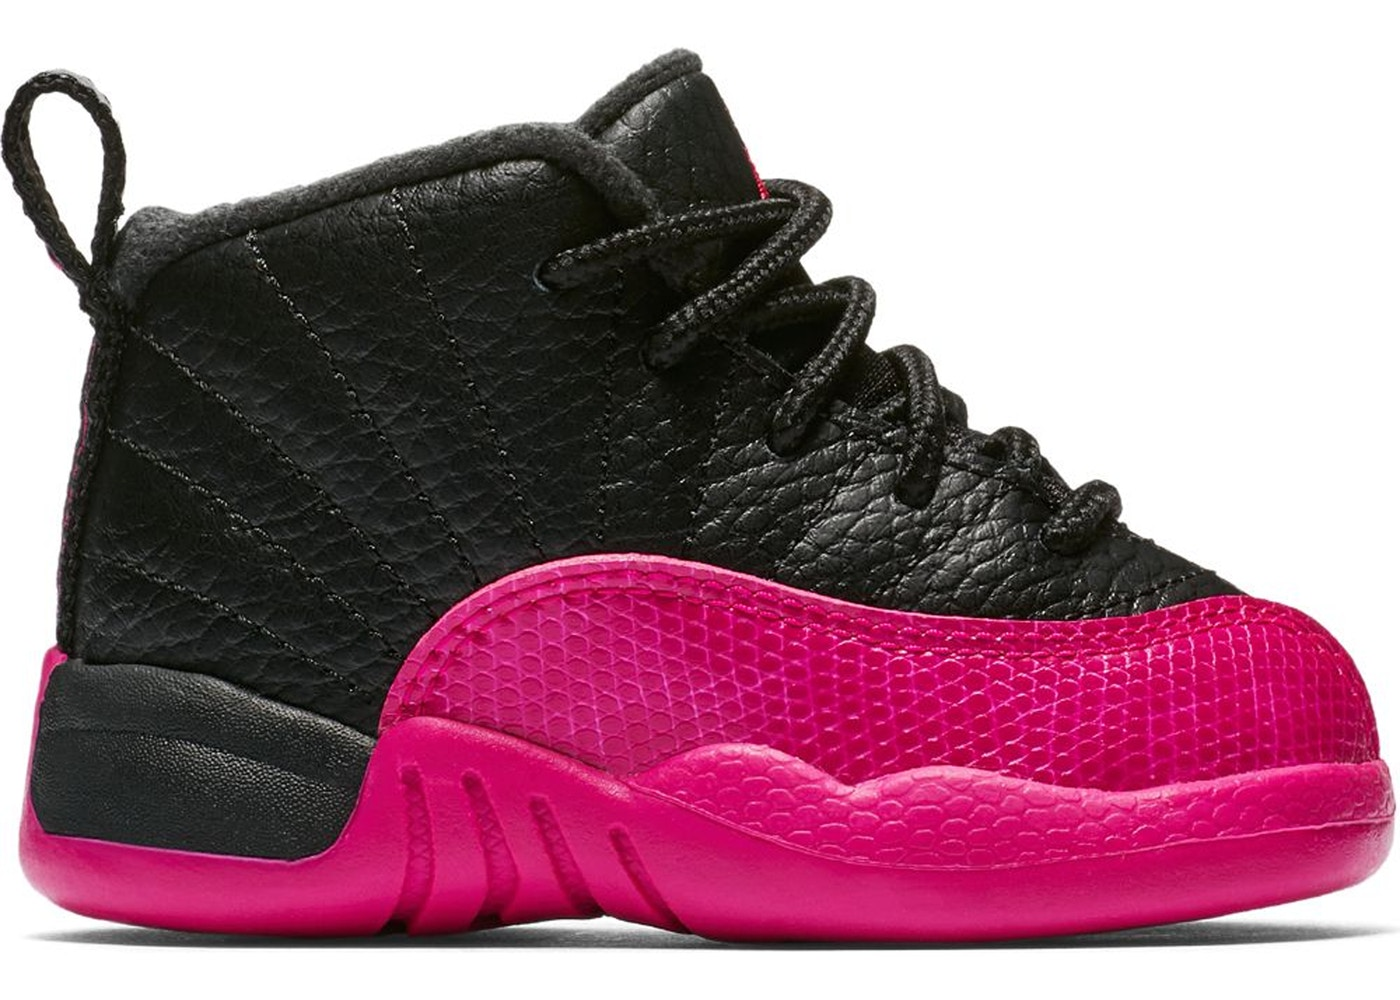 info for 73812 20538 Jordan 12 Retro Black Deadly Pink (TD)